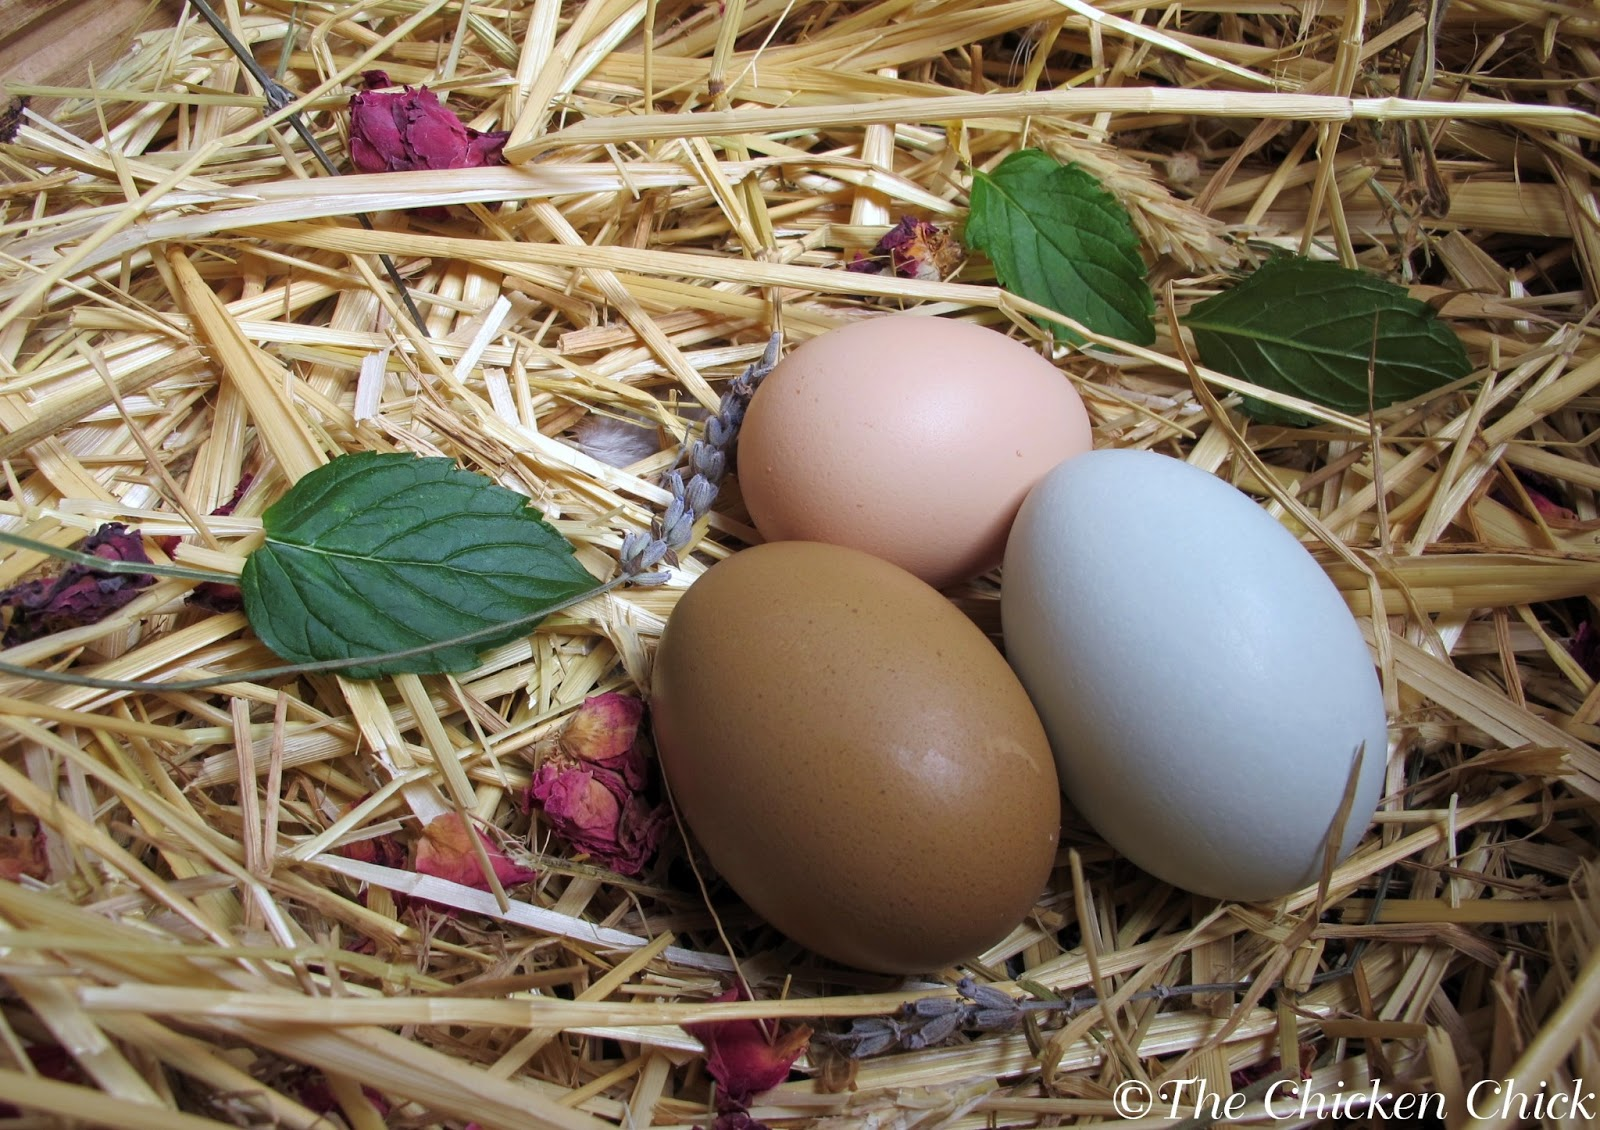 The Chicken Chick®: When Will a Hen Begin Laying Eggs? Watch for ...